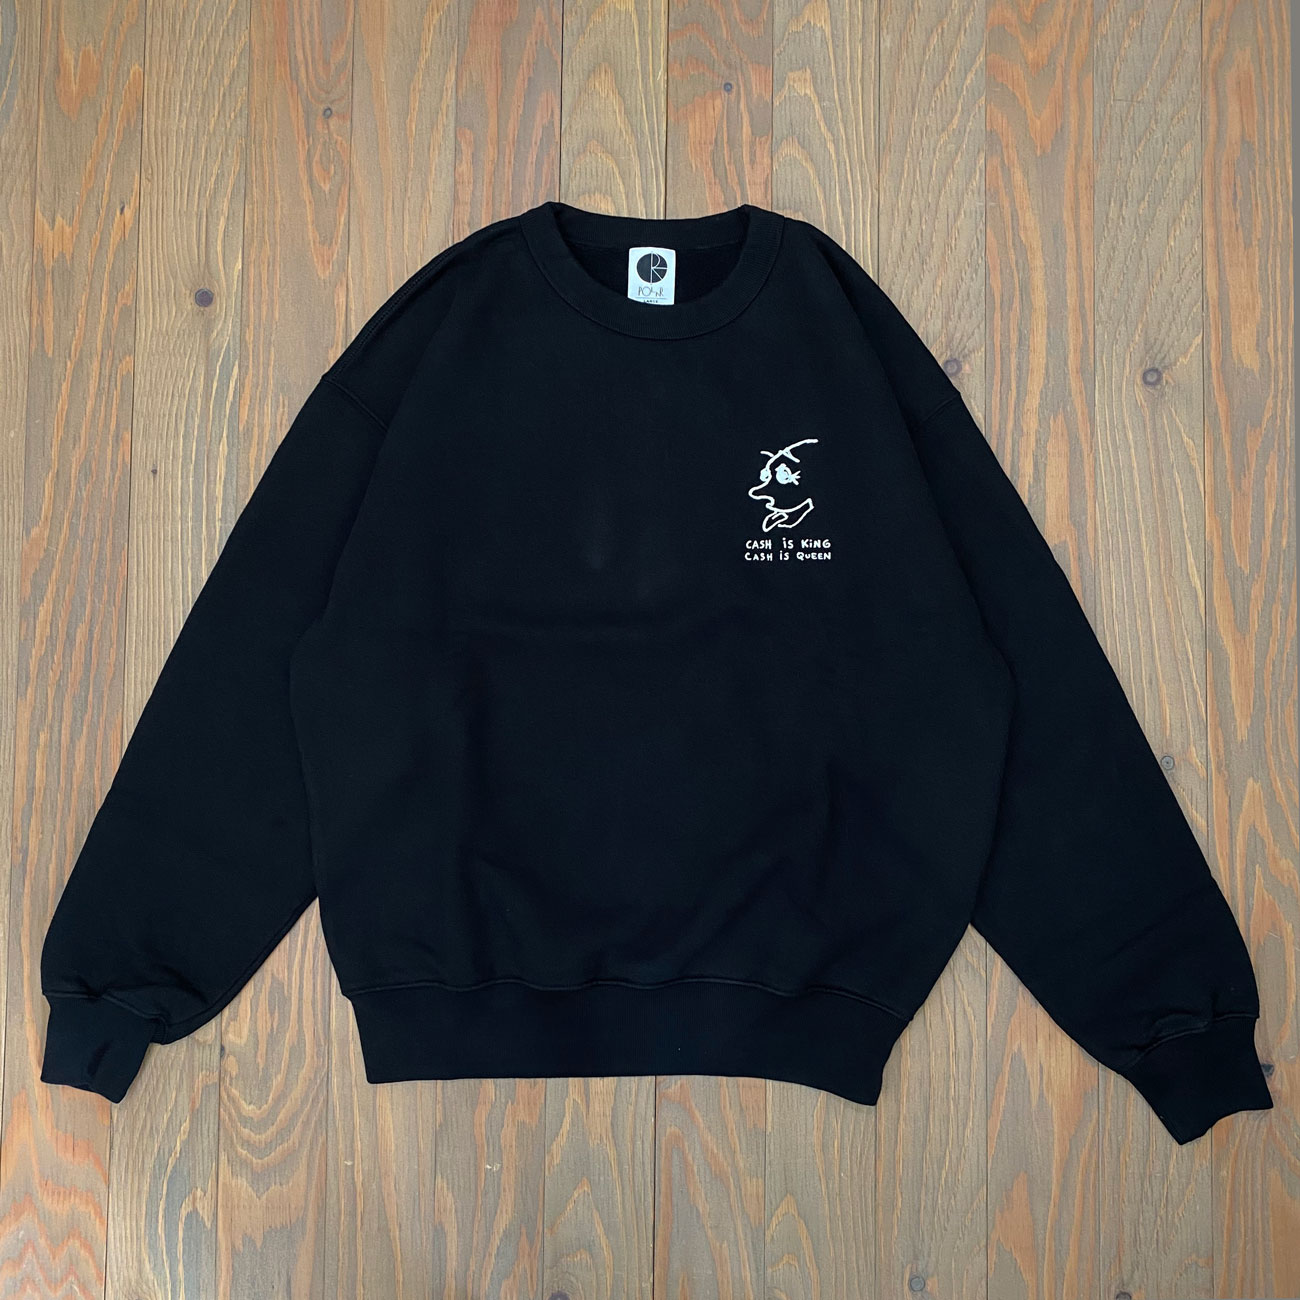 POLAR CASH IS QUEEN CREWNECK BLACK